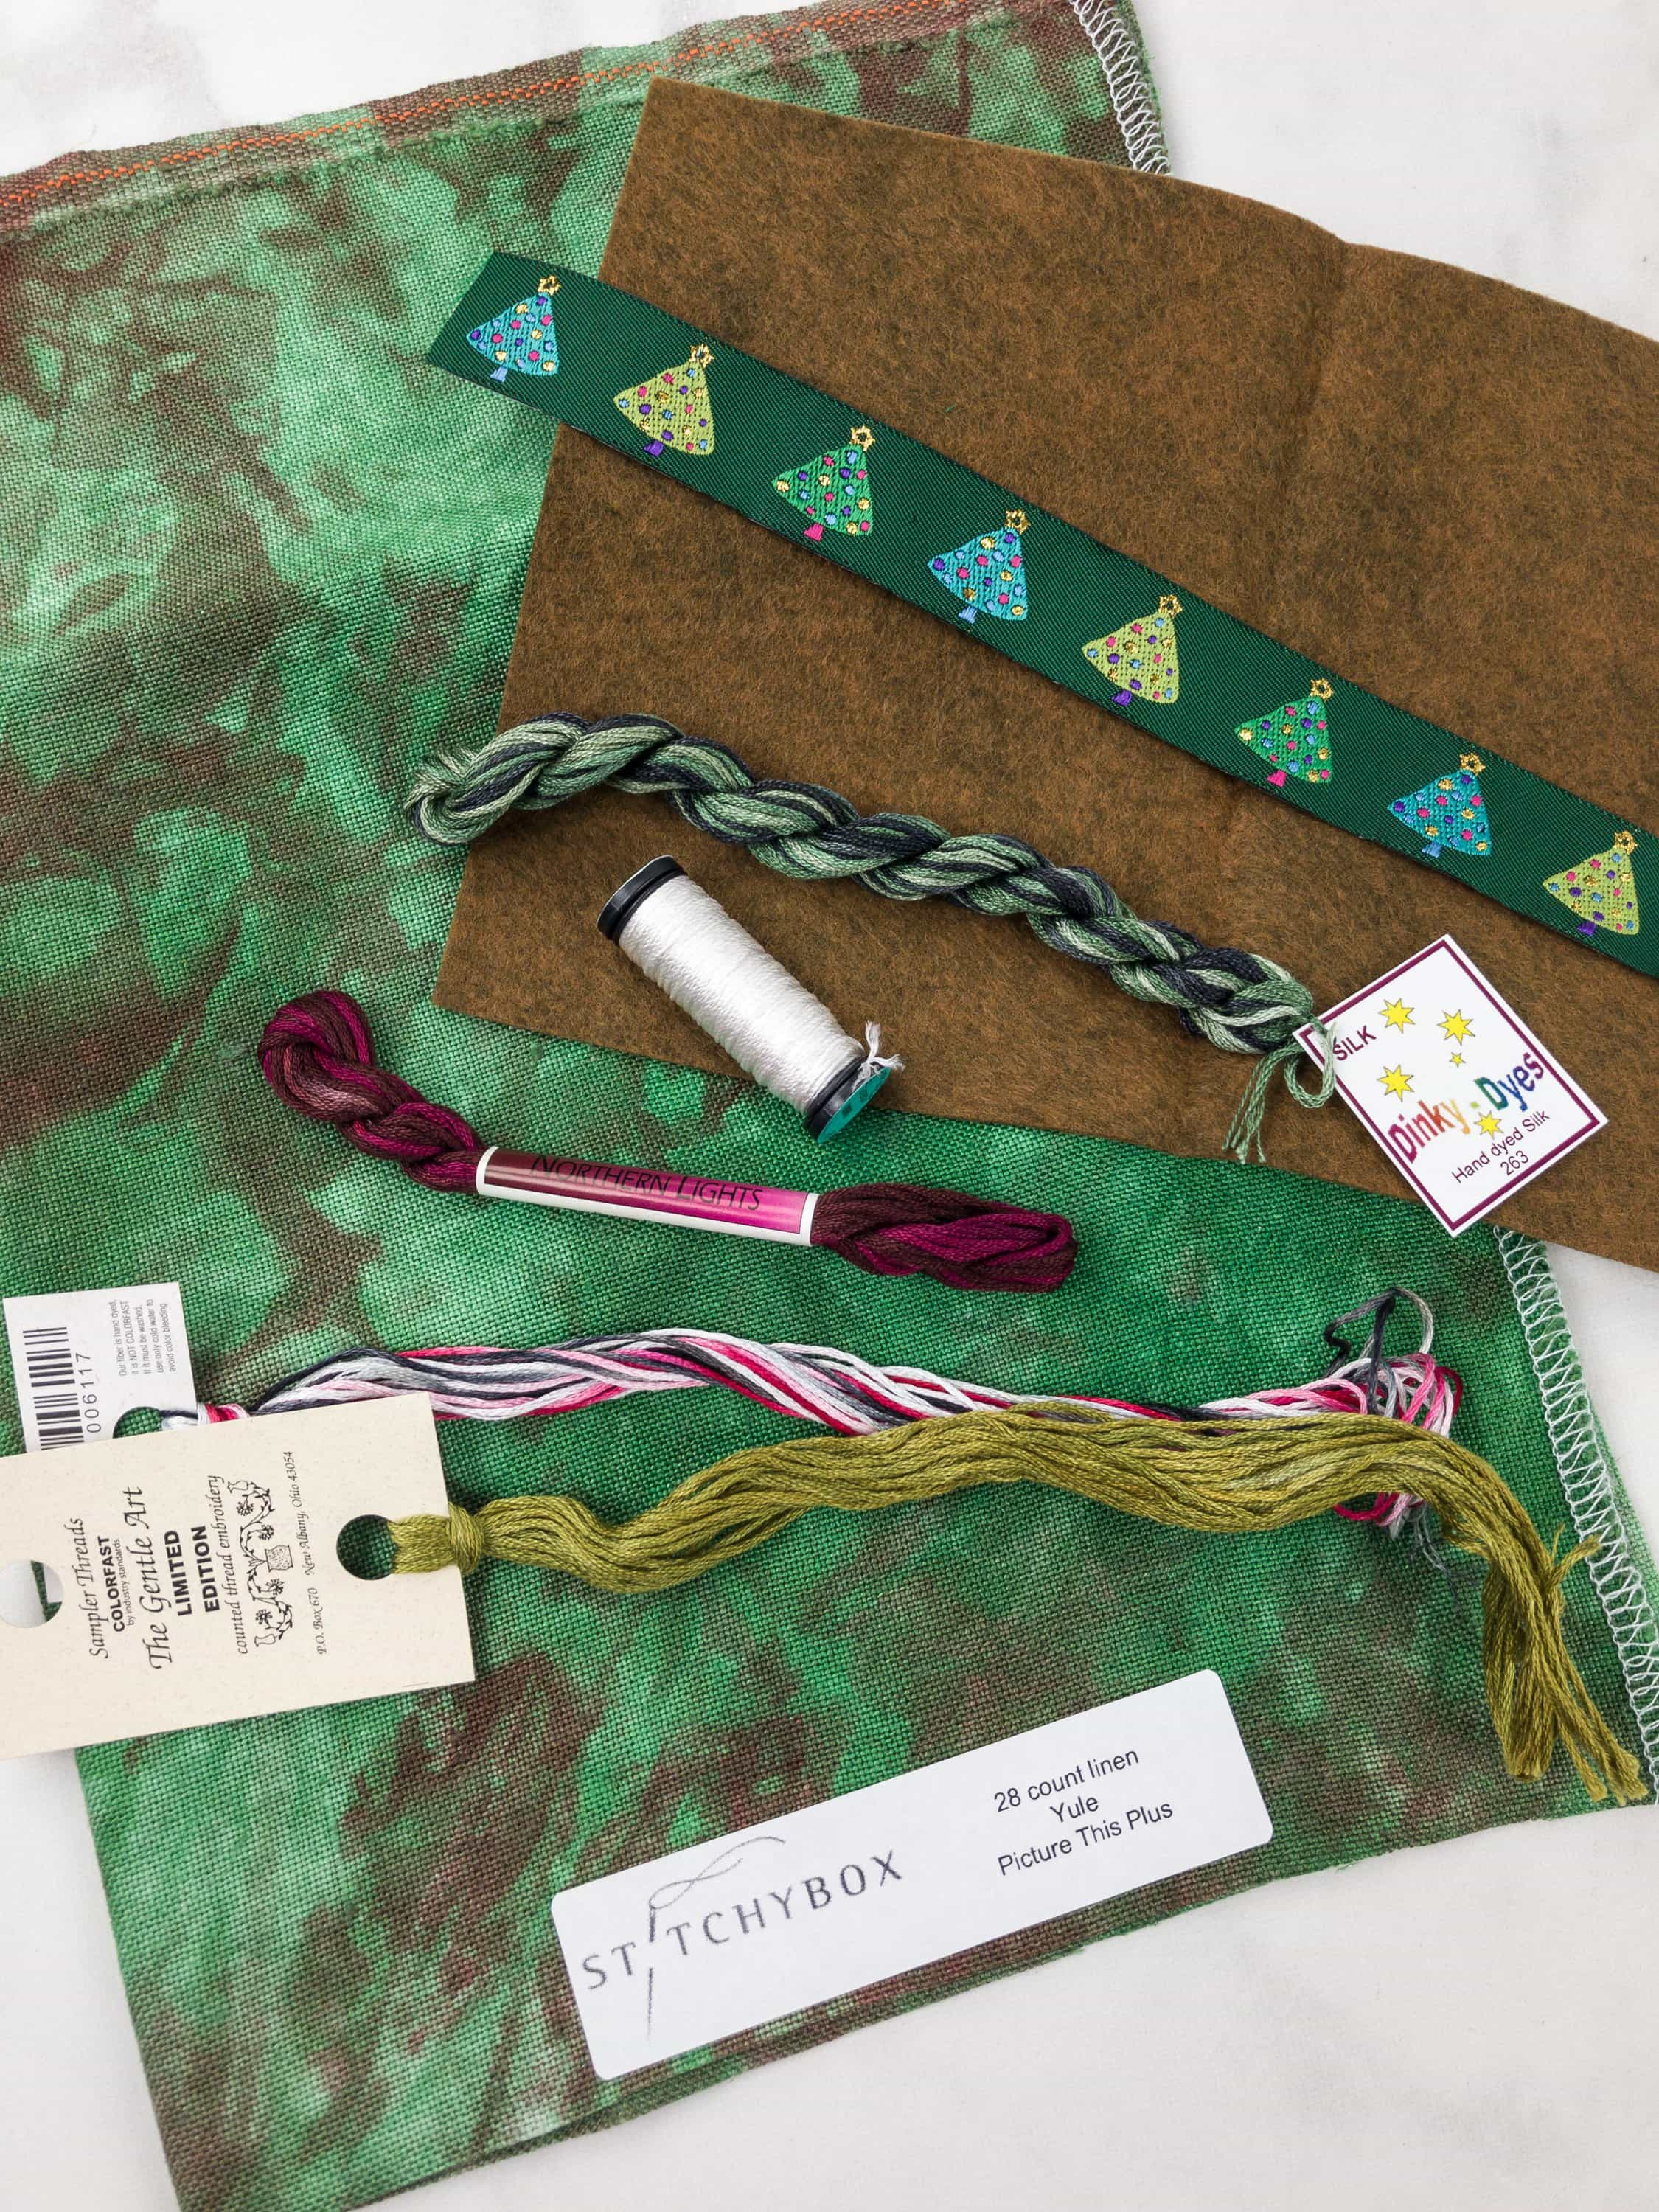 Stitchy Box July-August  2017 Subscription Box Review